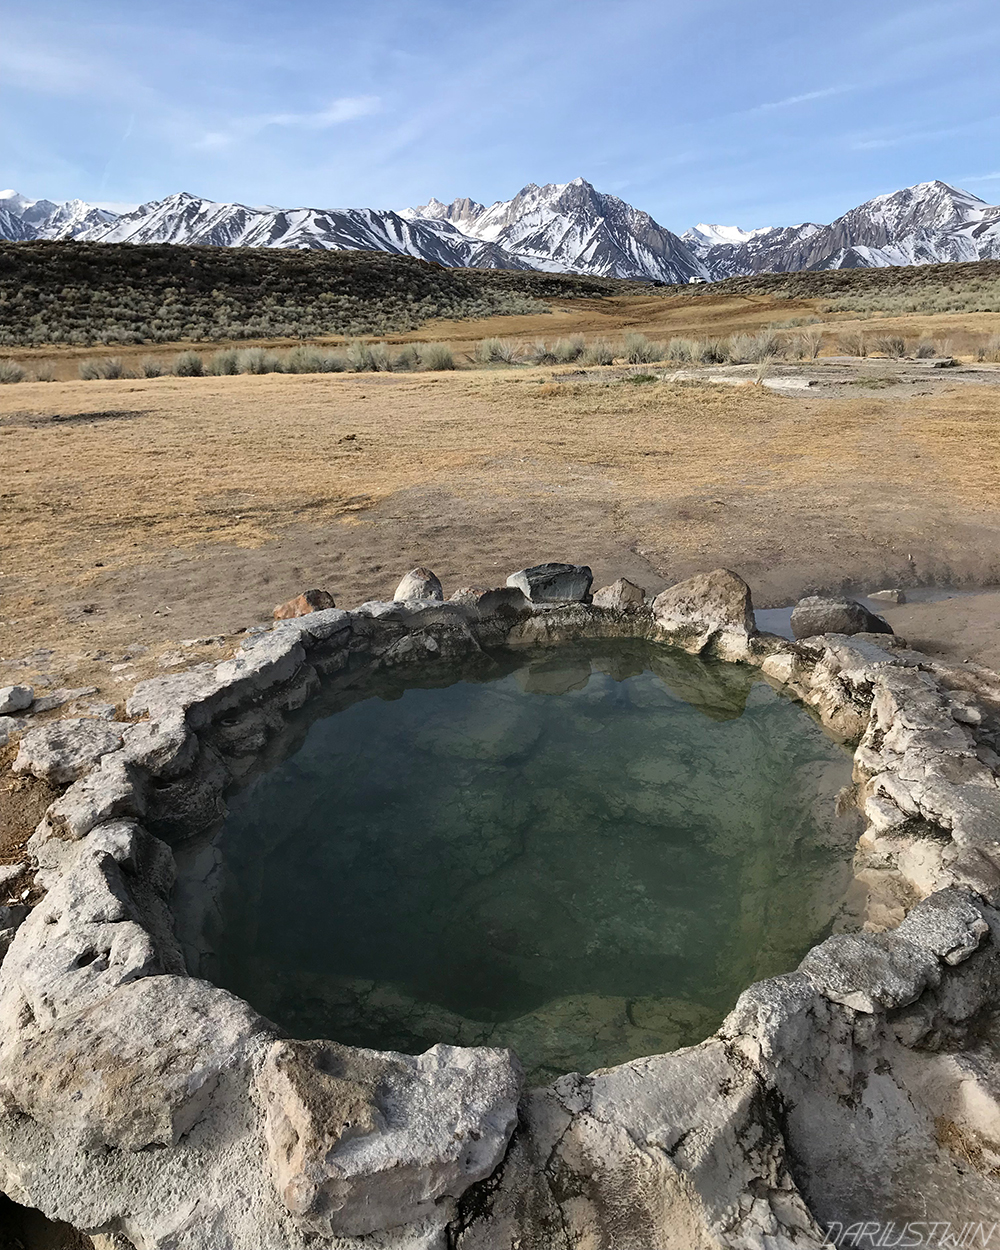 hotsprings_mountains_easternsierras_nature_travel_california_dariustwin.jpg